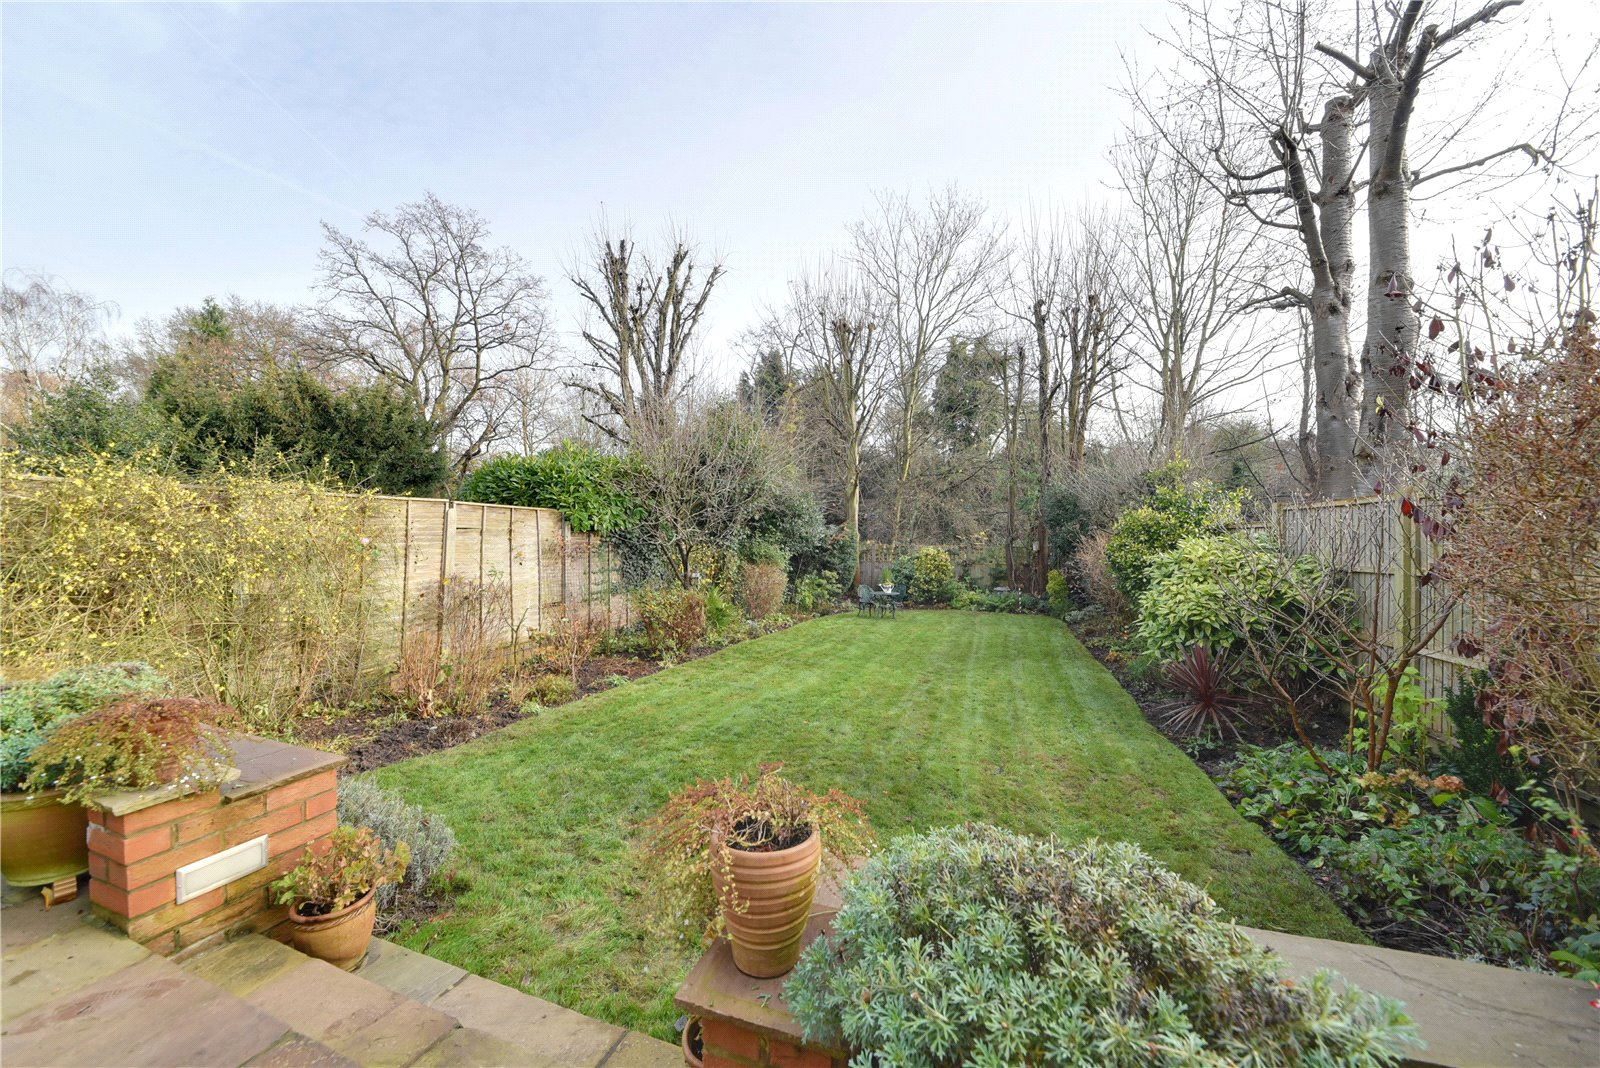 4 bed house for sale in Hendon, NW4 1LJ  - Property Image 7